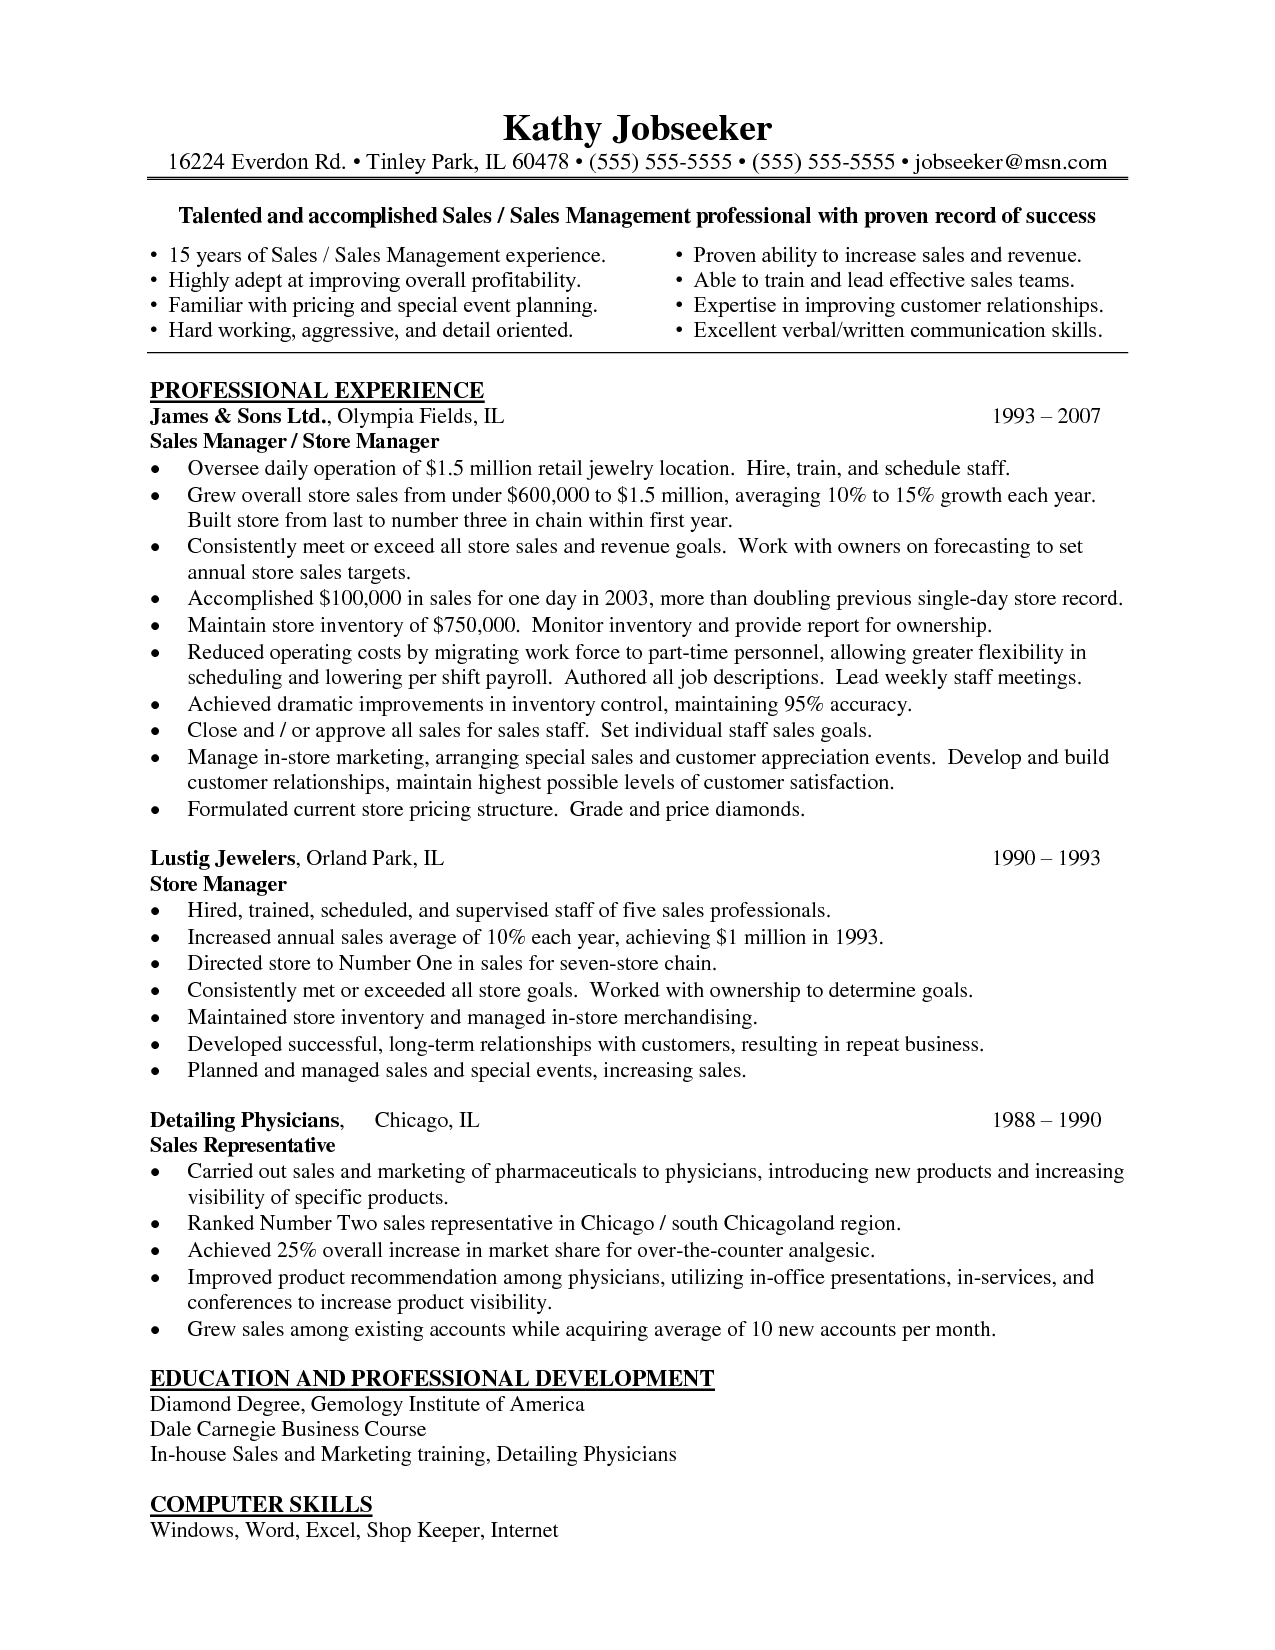 resume examples for retail store manager | sample cover letter for ... - Examples Of Resumes For Management Positions